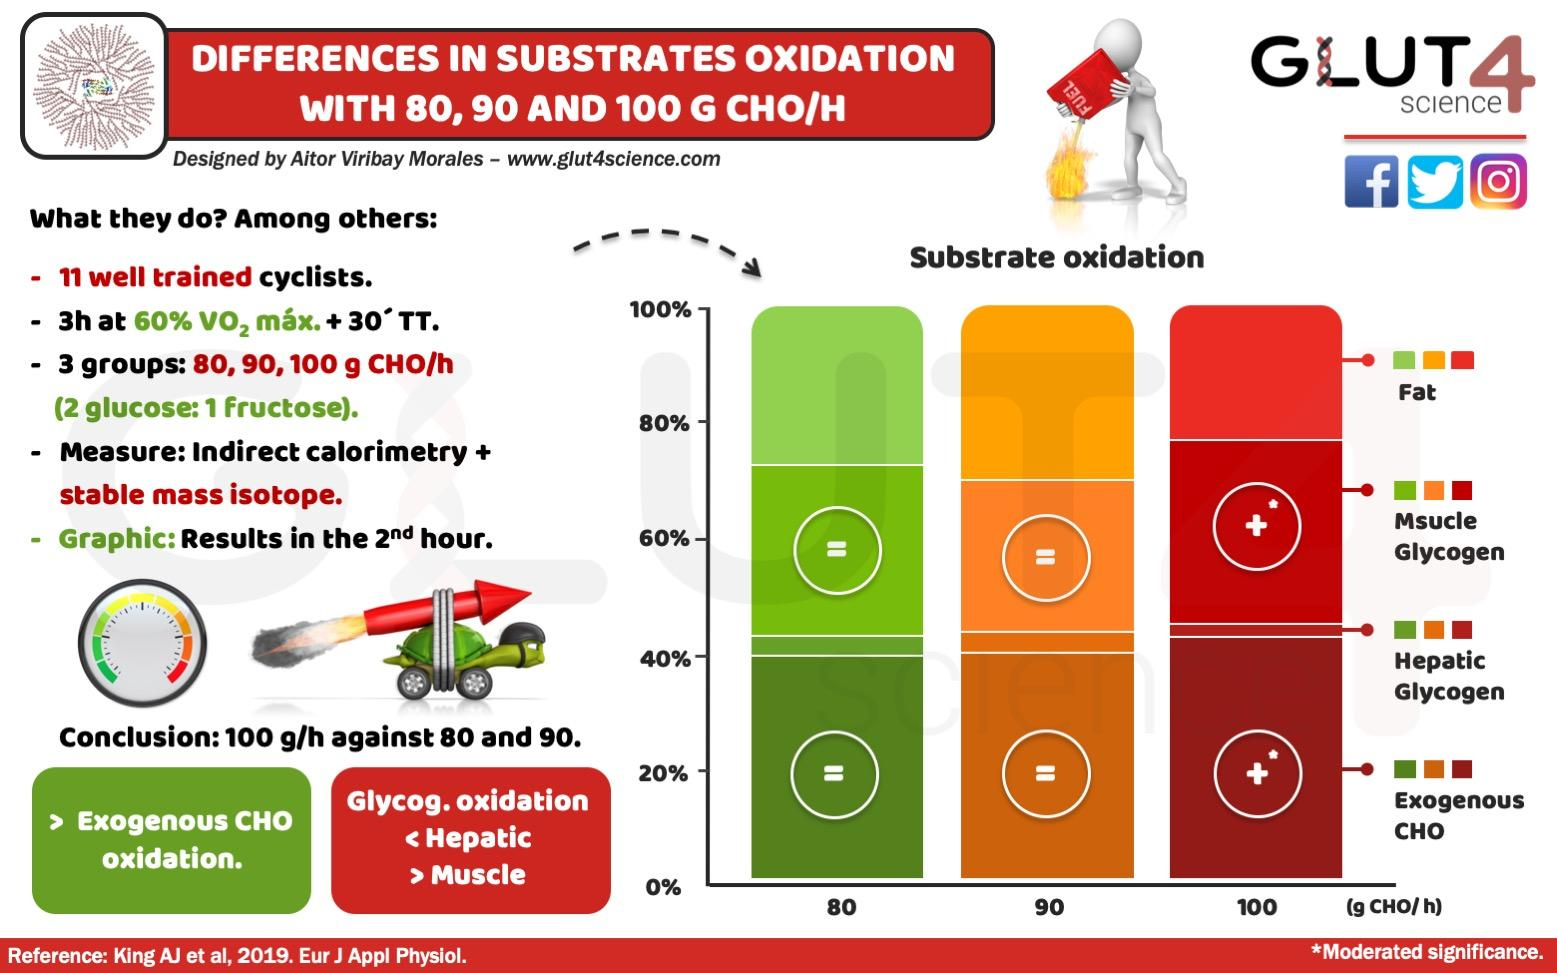 Substrate oxidation 80,90 and 100 g/h